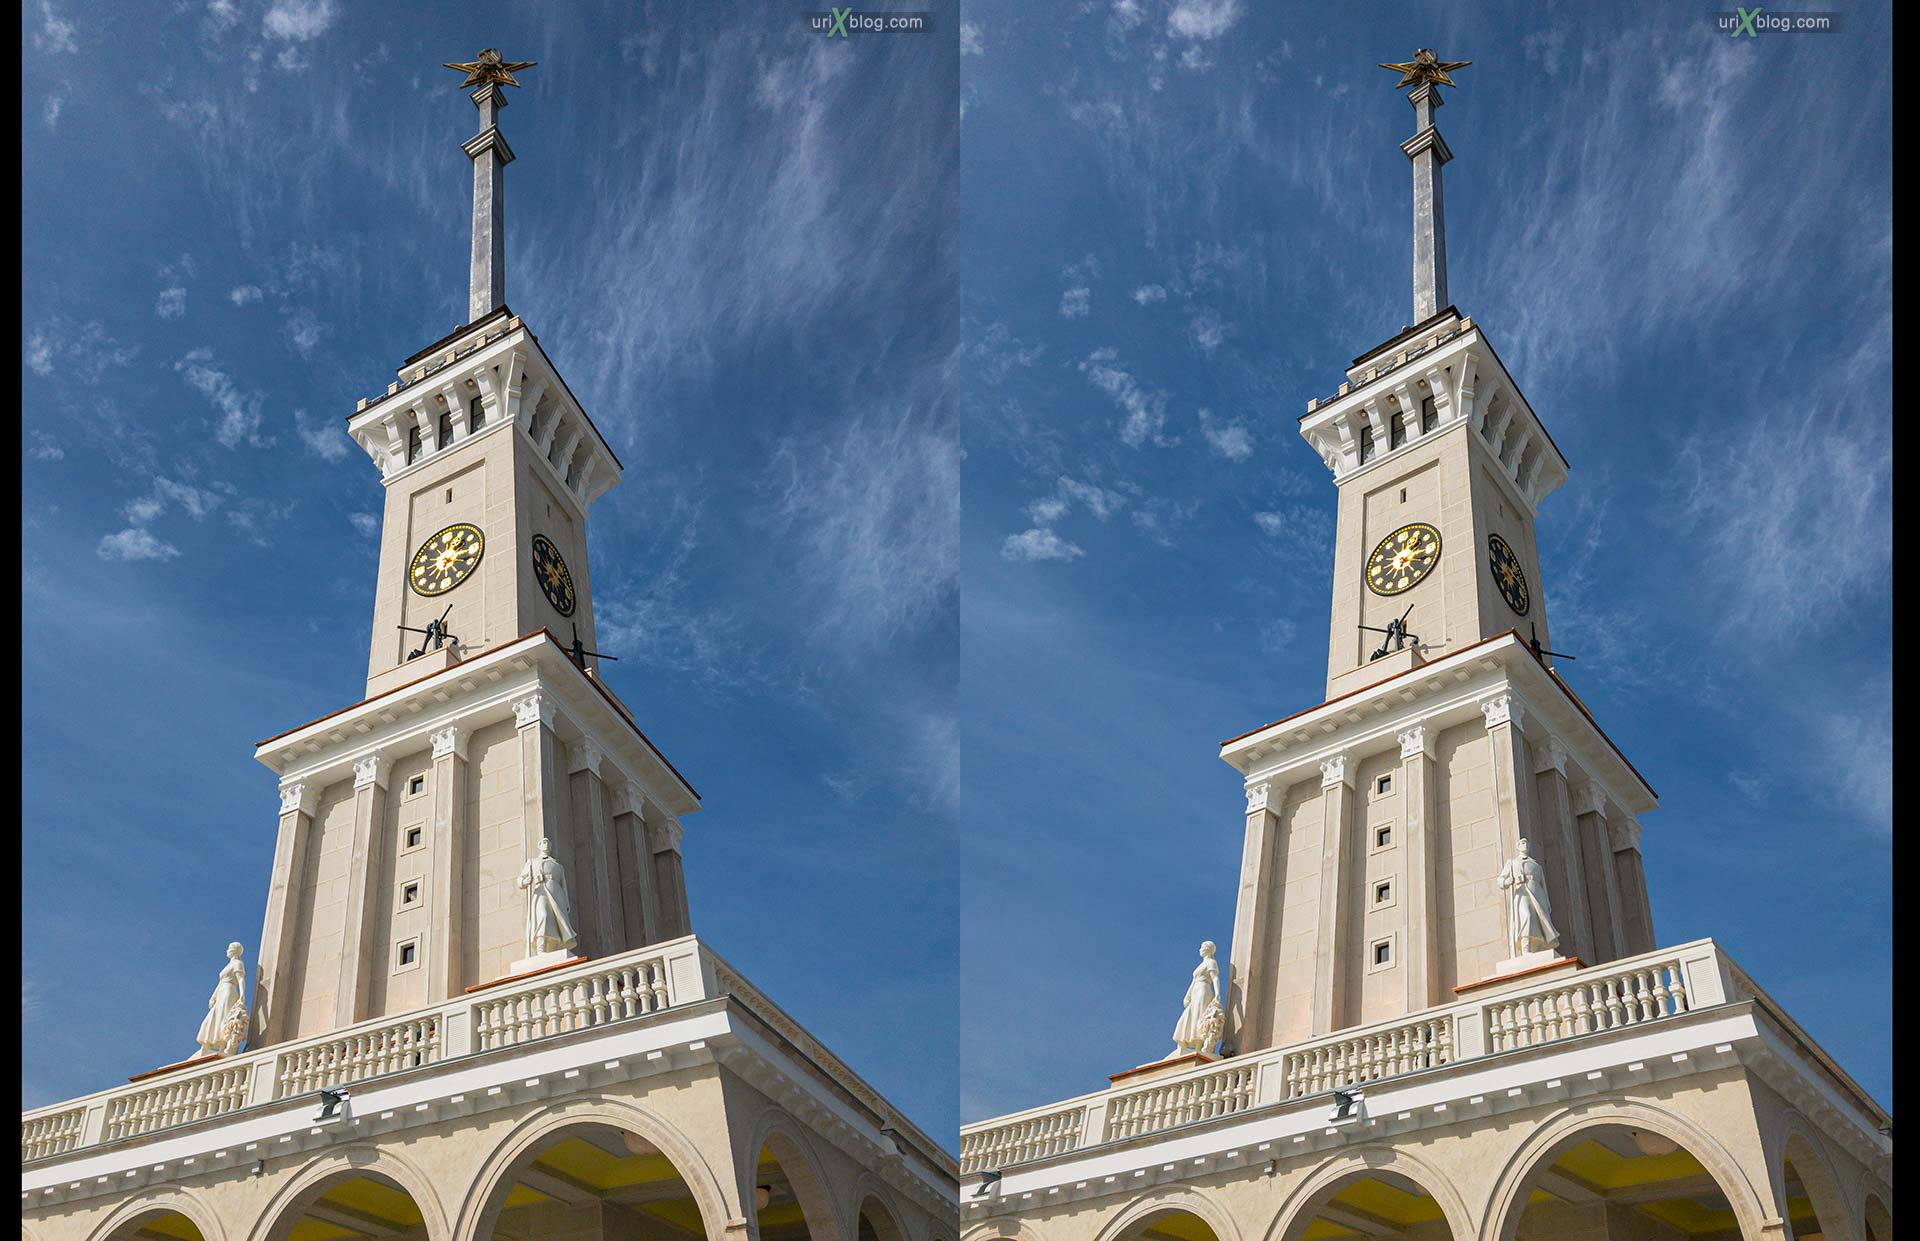 Northern River Terminal, spire, tower, Moscow, Russia, 3D, stereo pair, cross-eyed, crossview, cross view stereo pair, stereoscopic